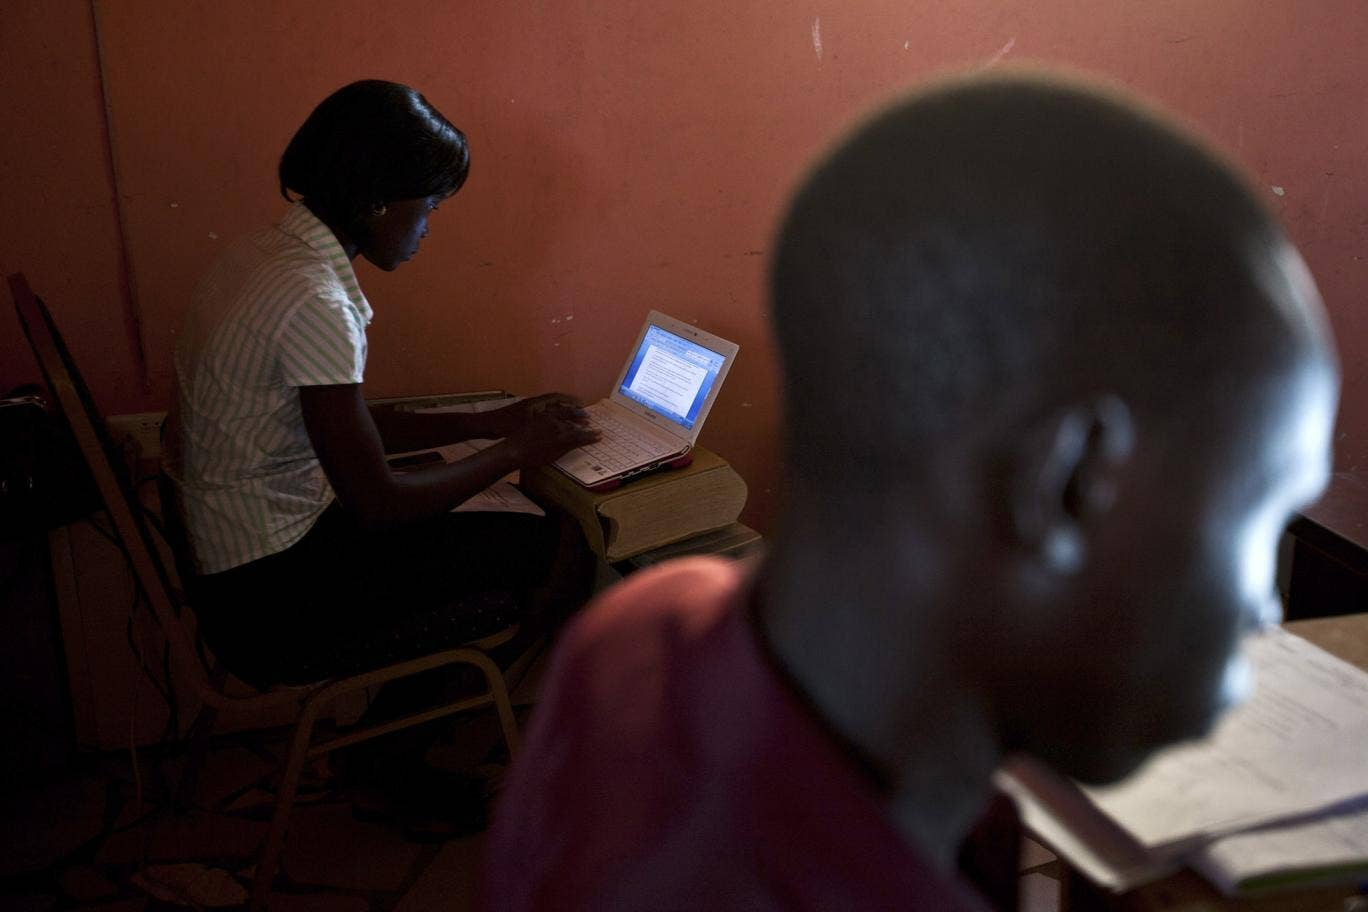 Google is reported to want to extend new wireless networks to sub-Saharan Africa and Southeast Asia.